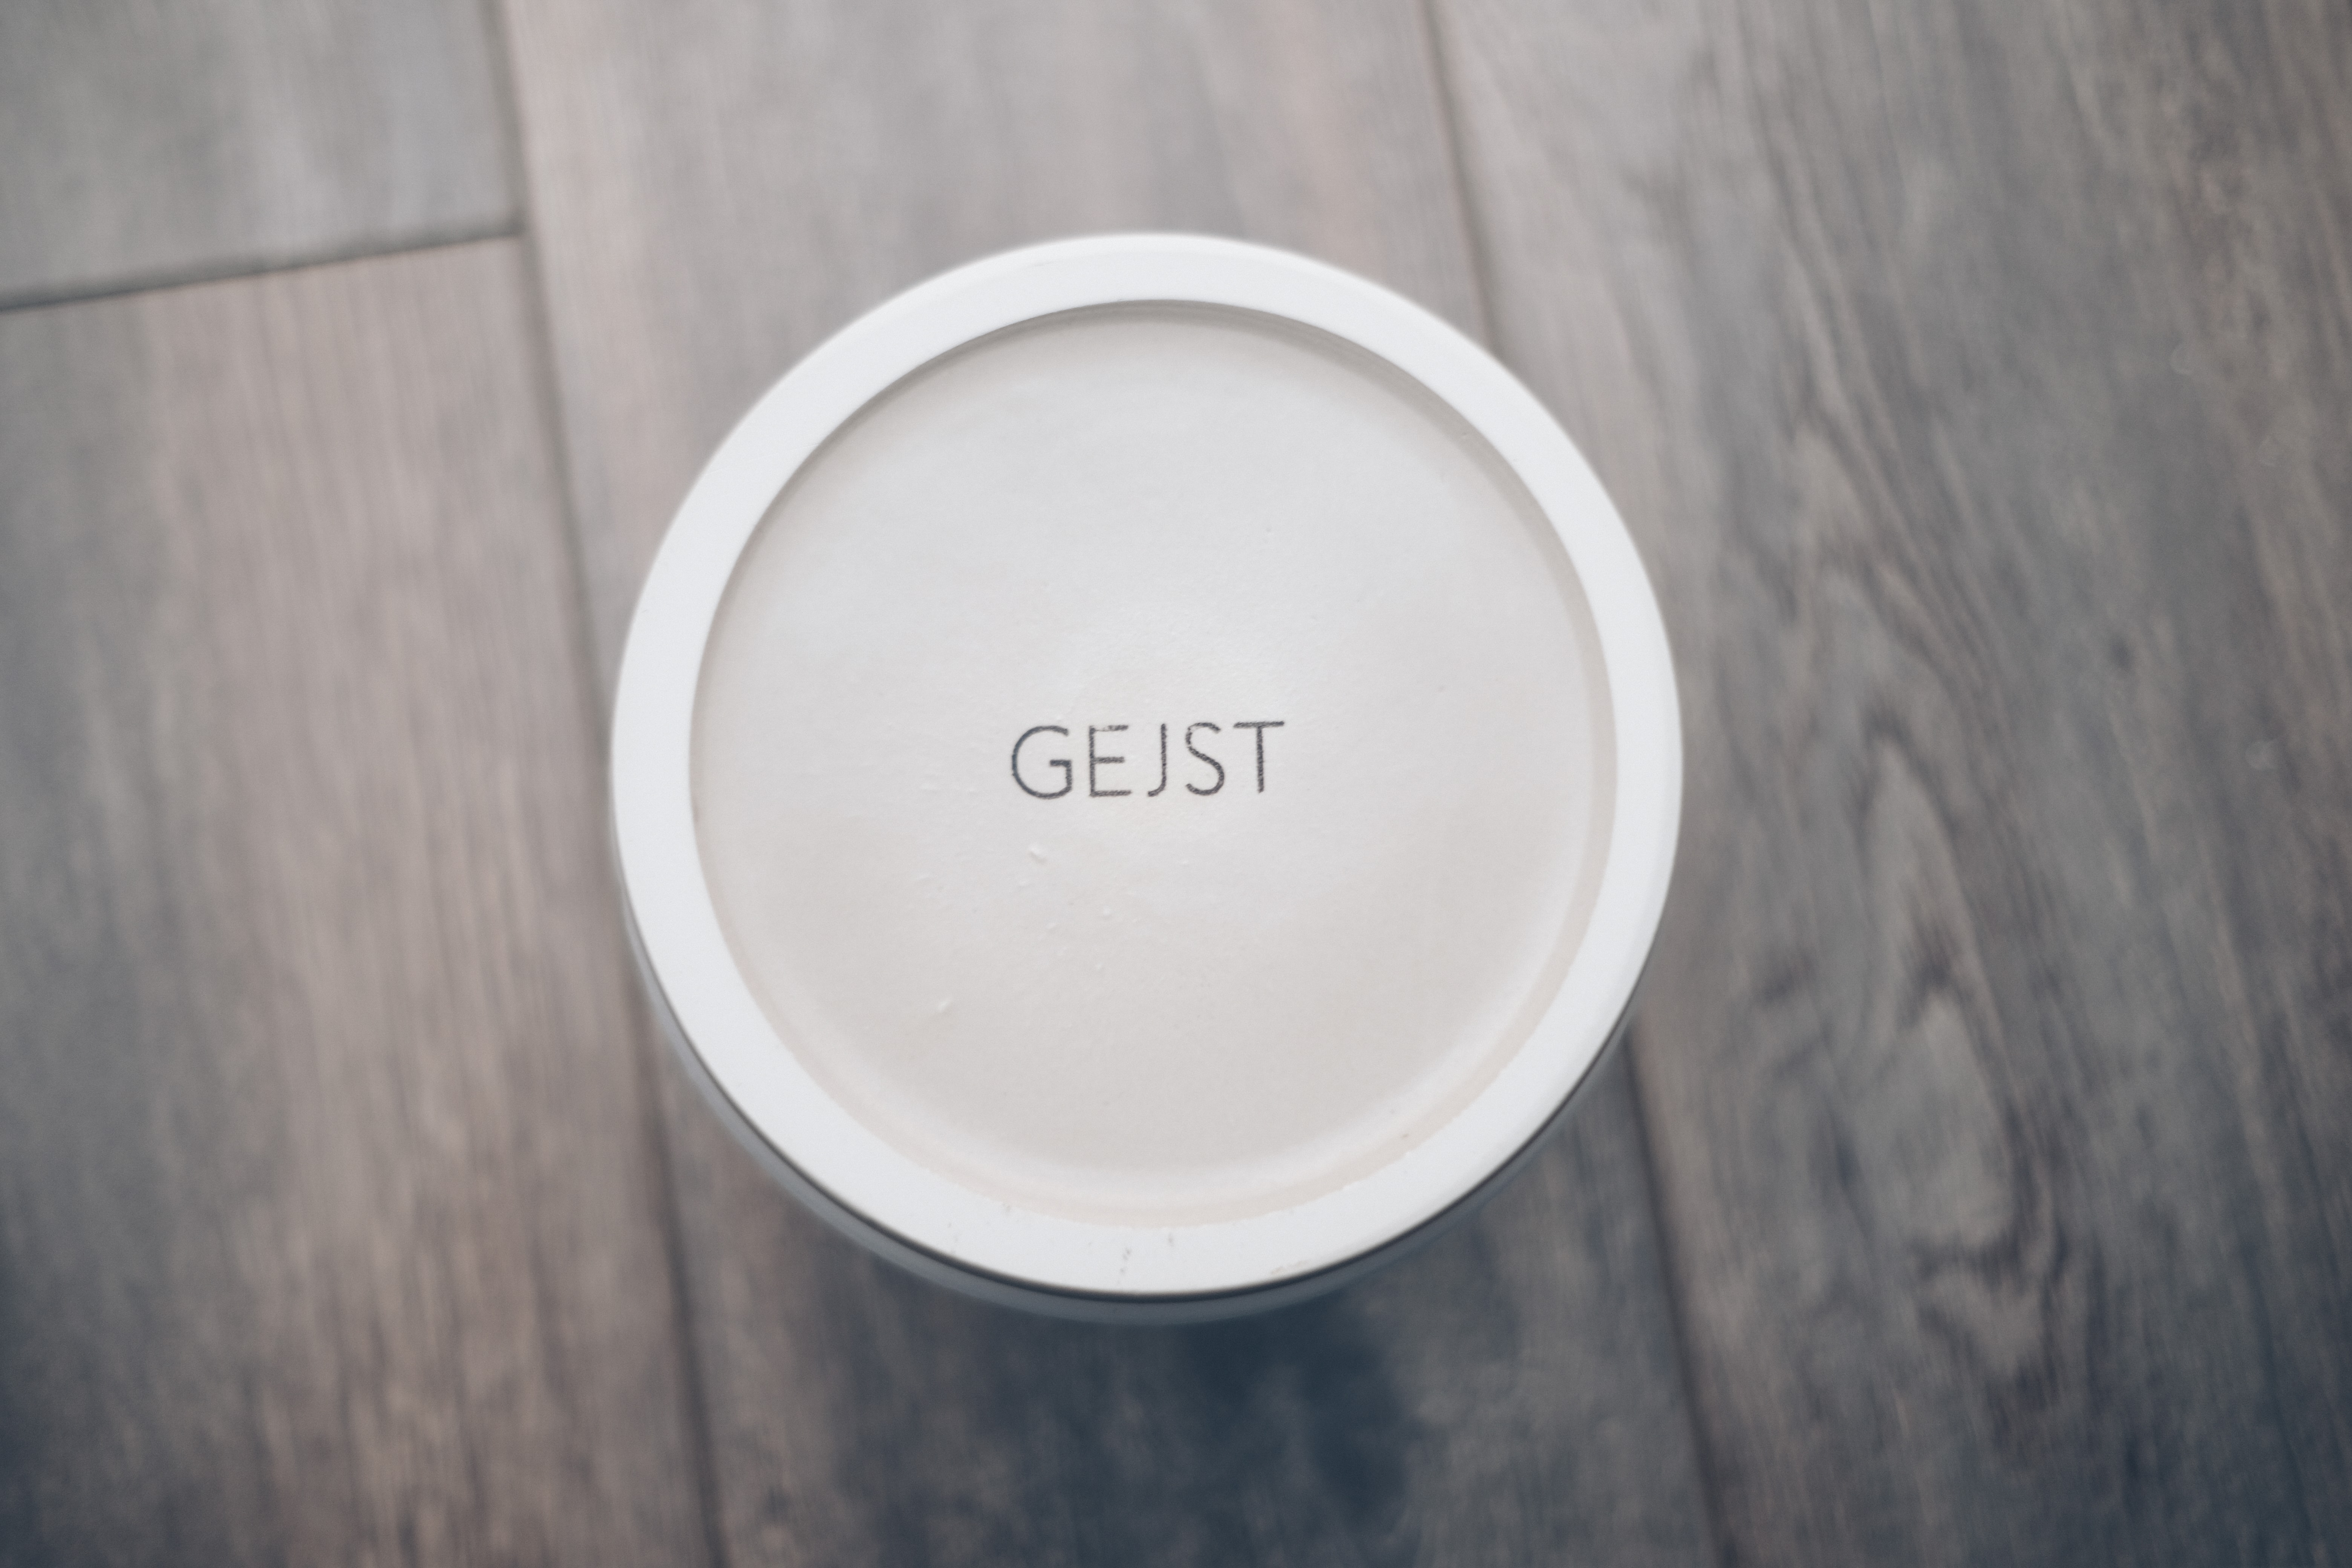 Bottom the vase visible with the gejst branding visible